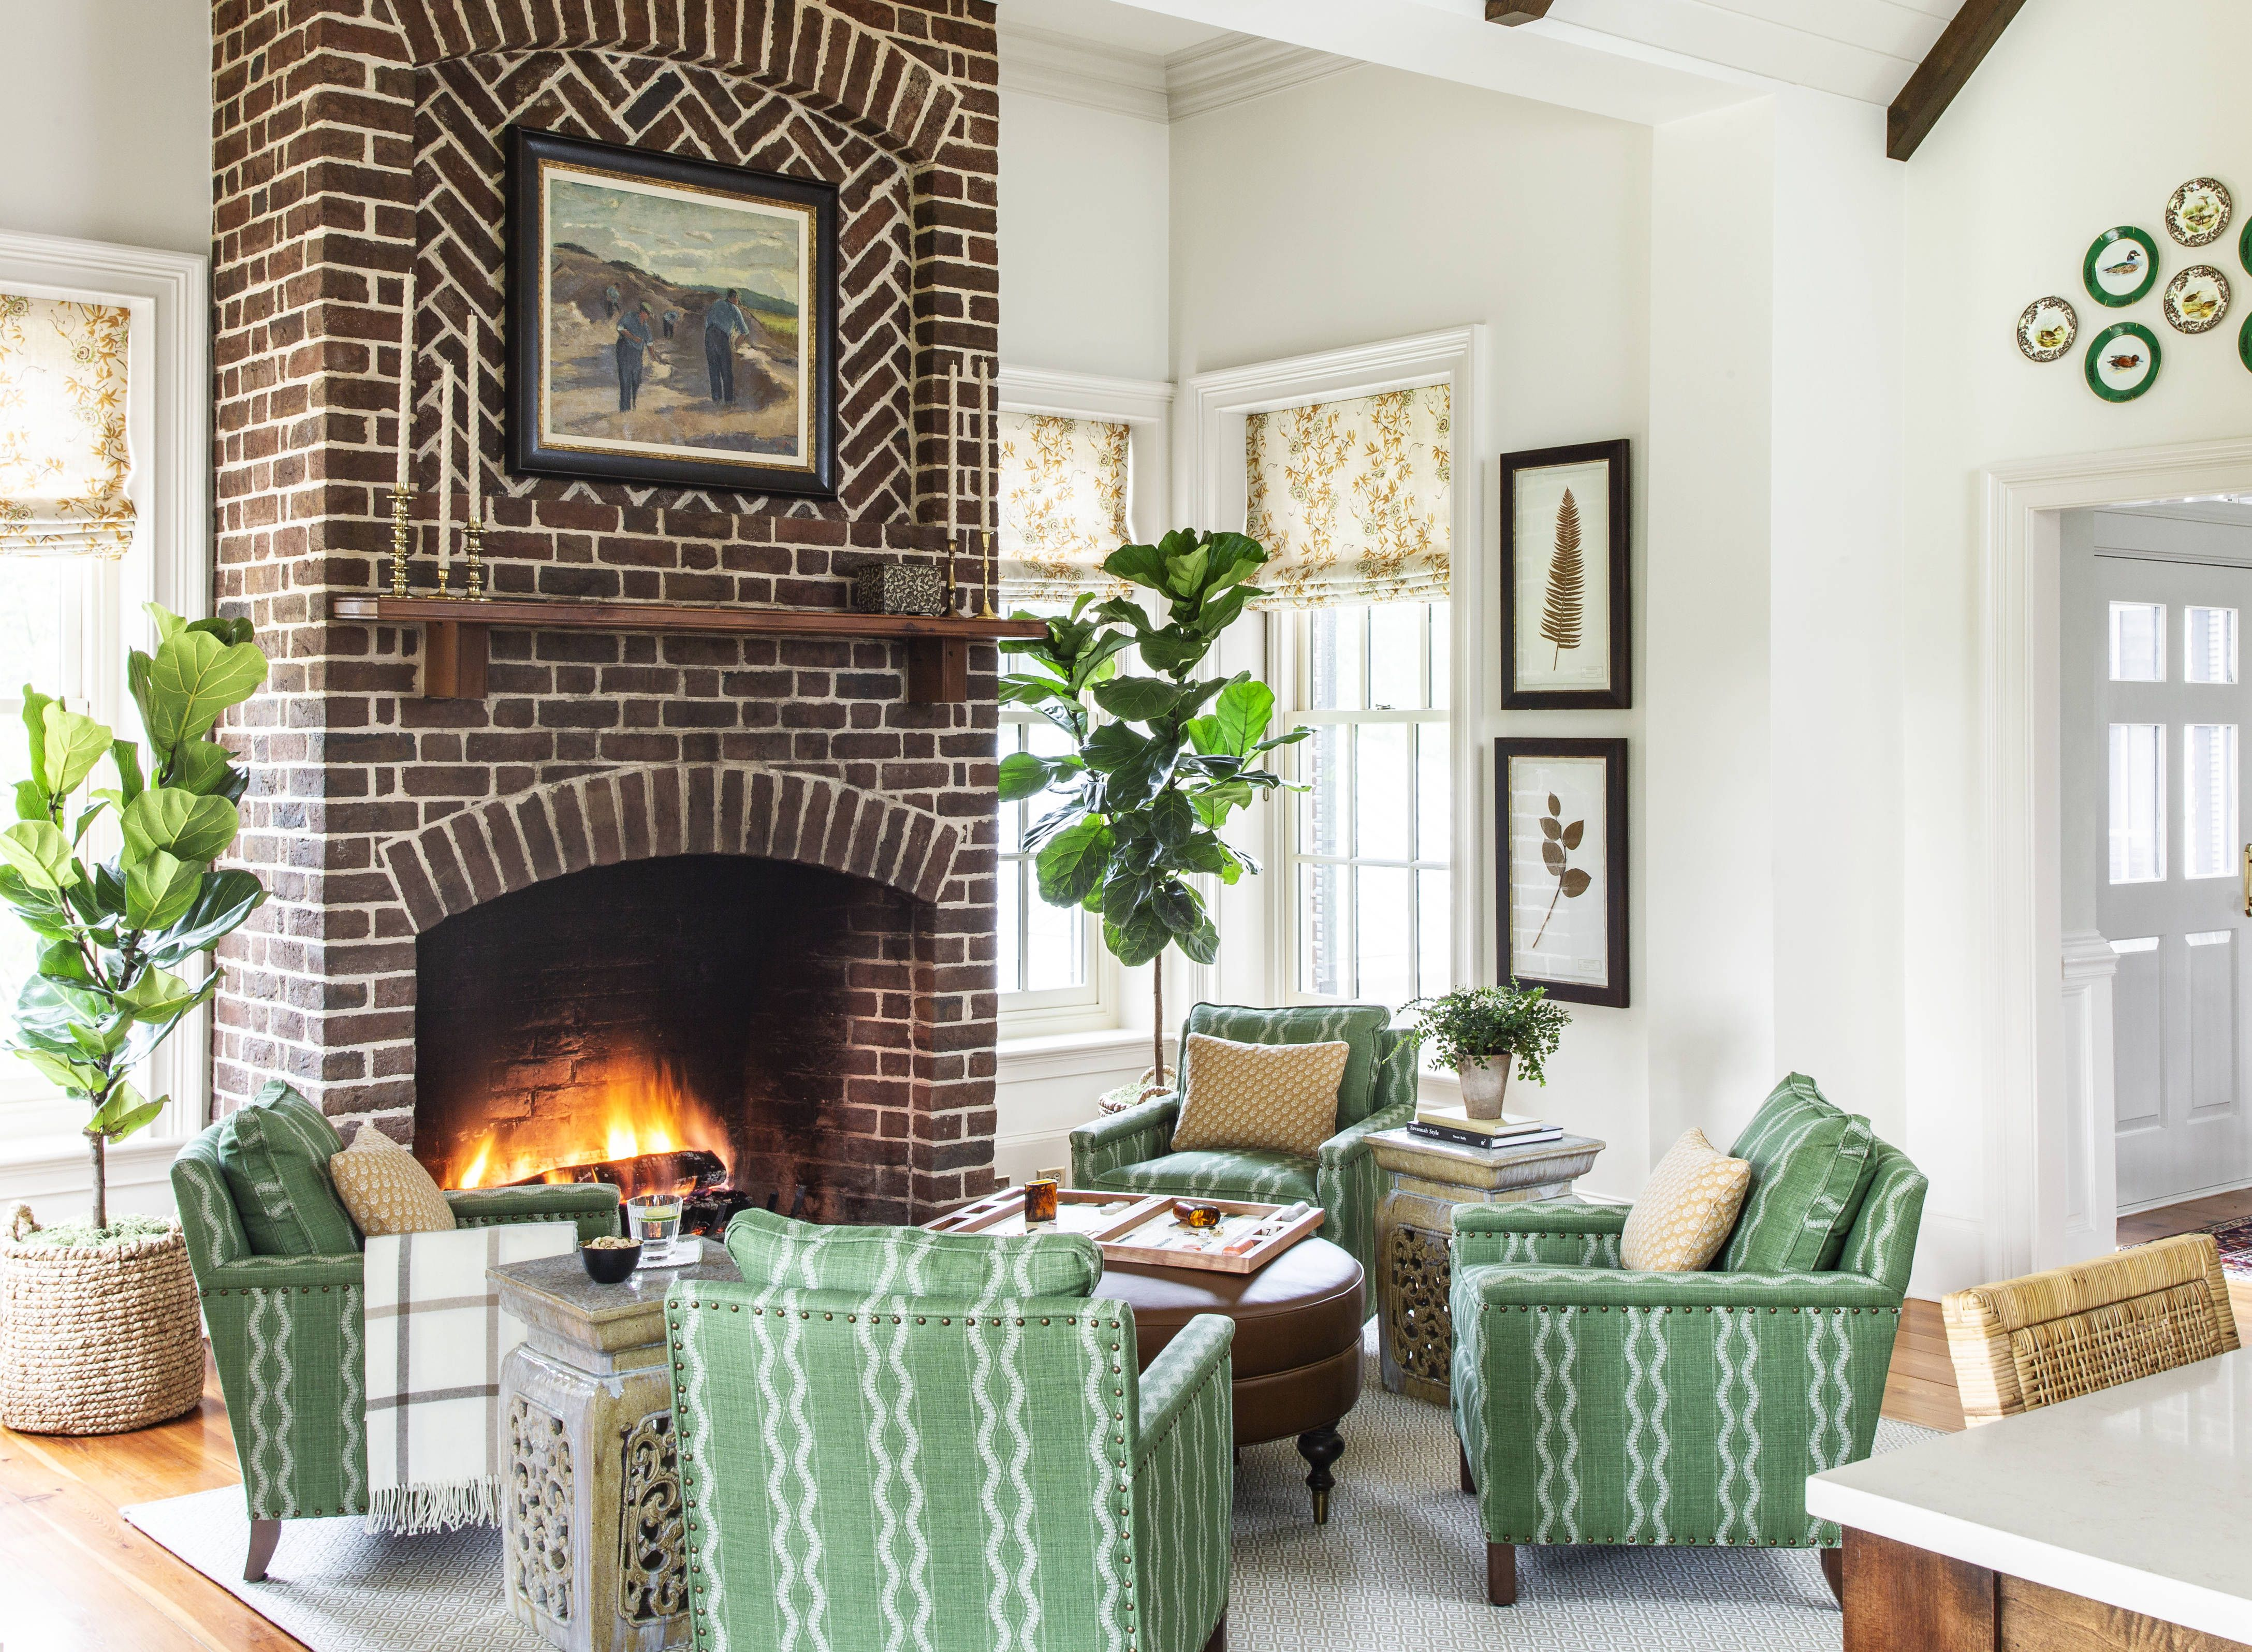 50 Fireplace Ideas 2020 Best Fireplace Designs In Every Style